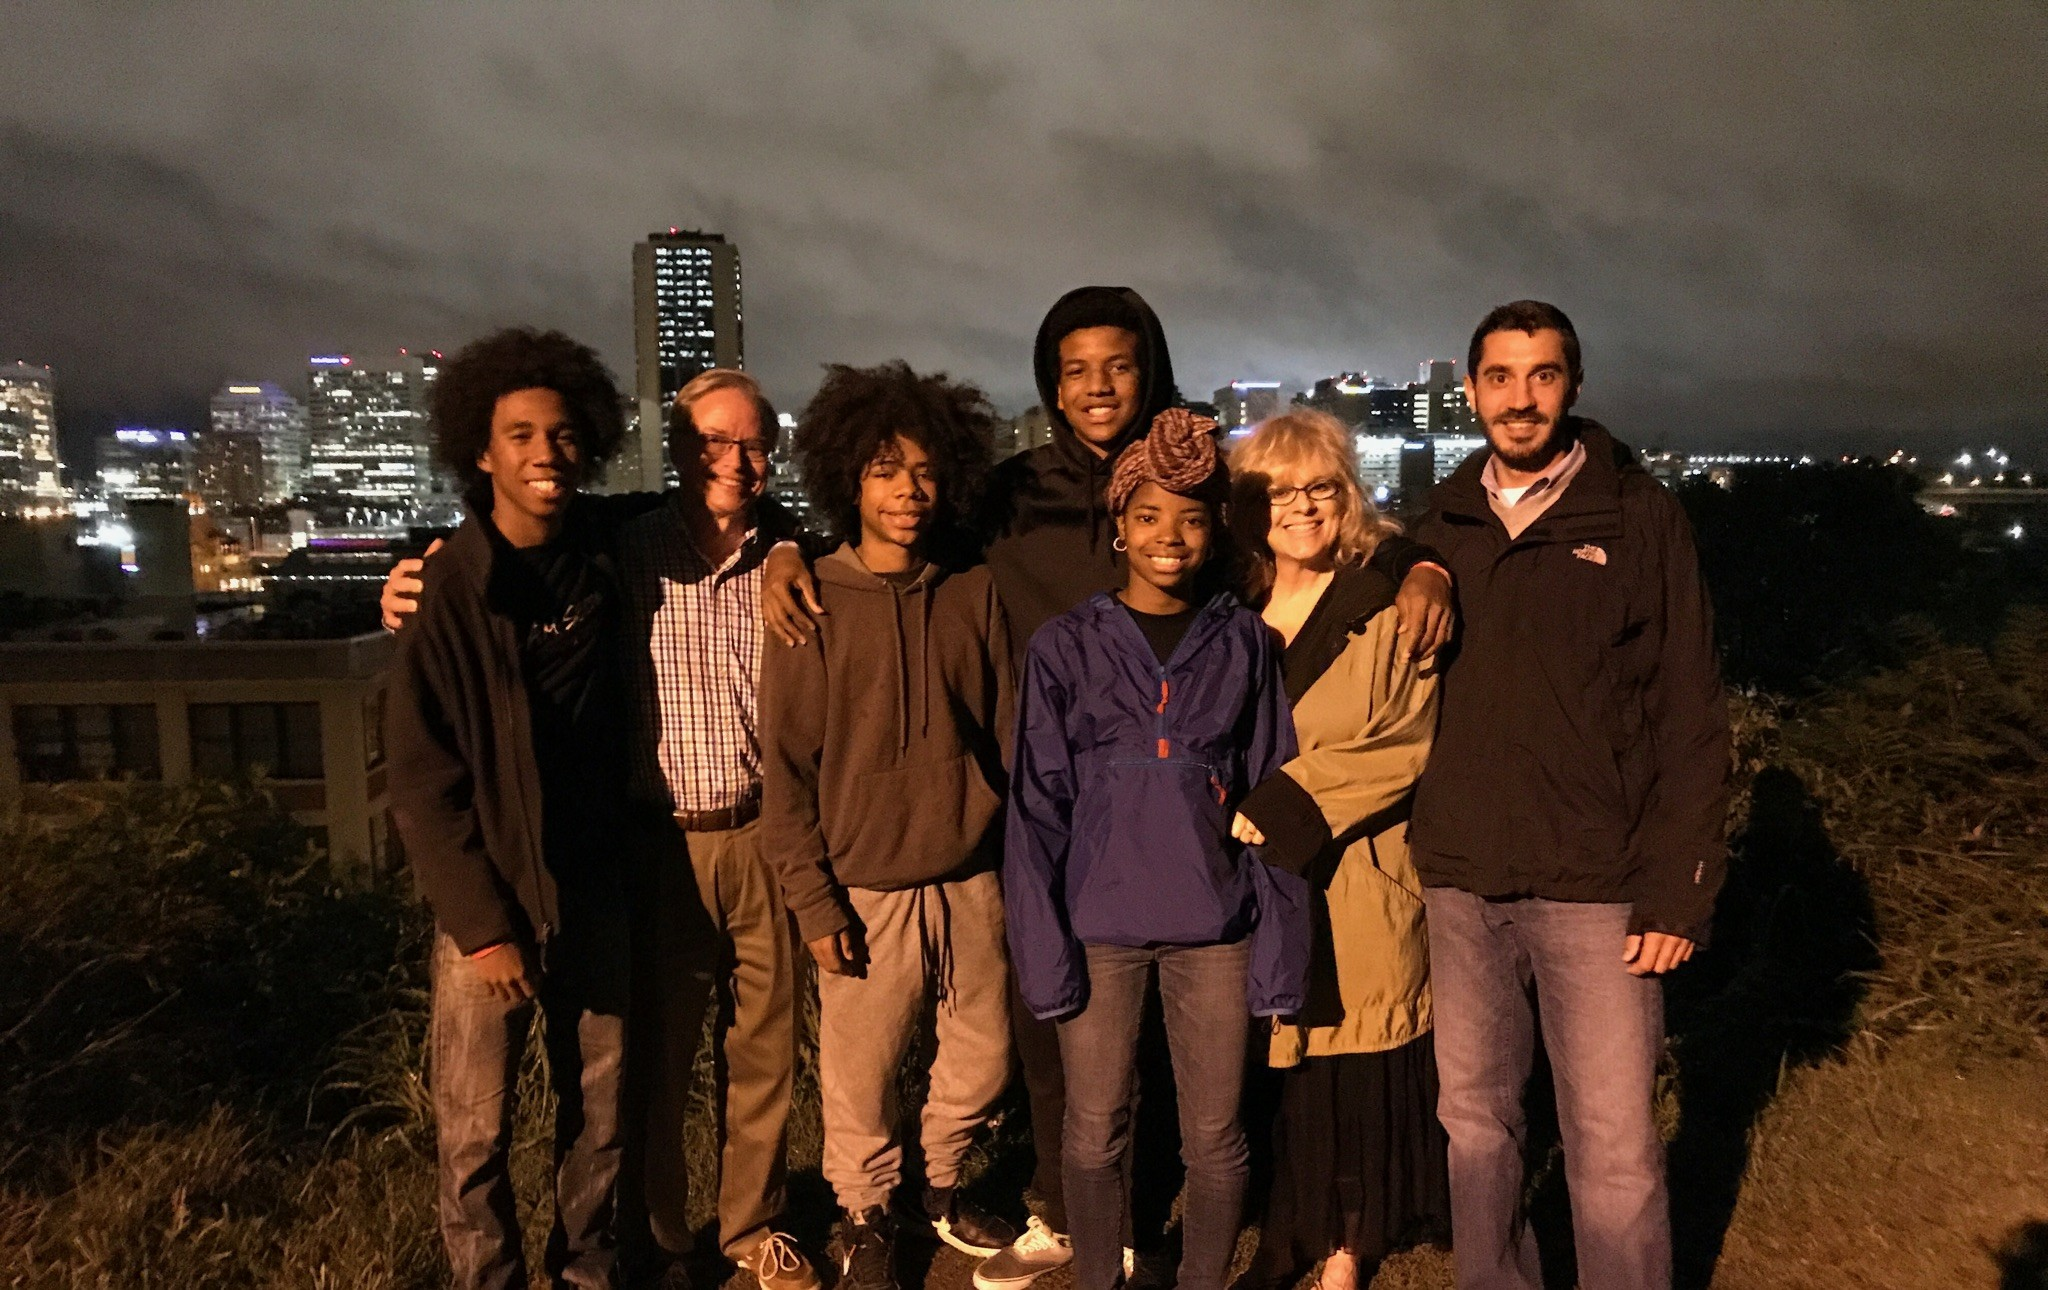 This is a picture of me with some of my Mosby Court kids, at Richmond Hill, overlooking the City, after one of our Tuesday night prayer meetings.